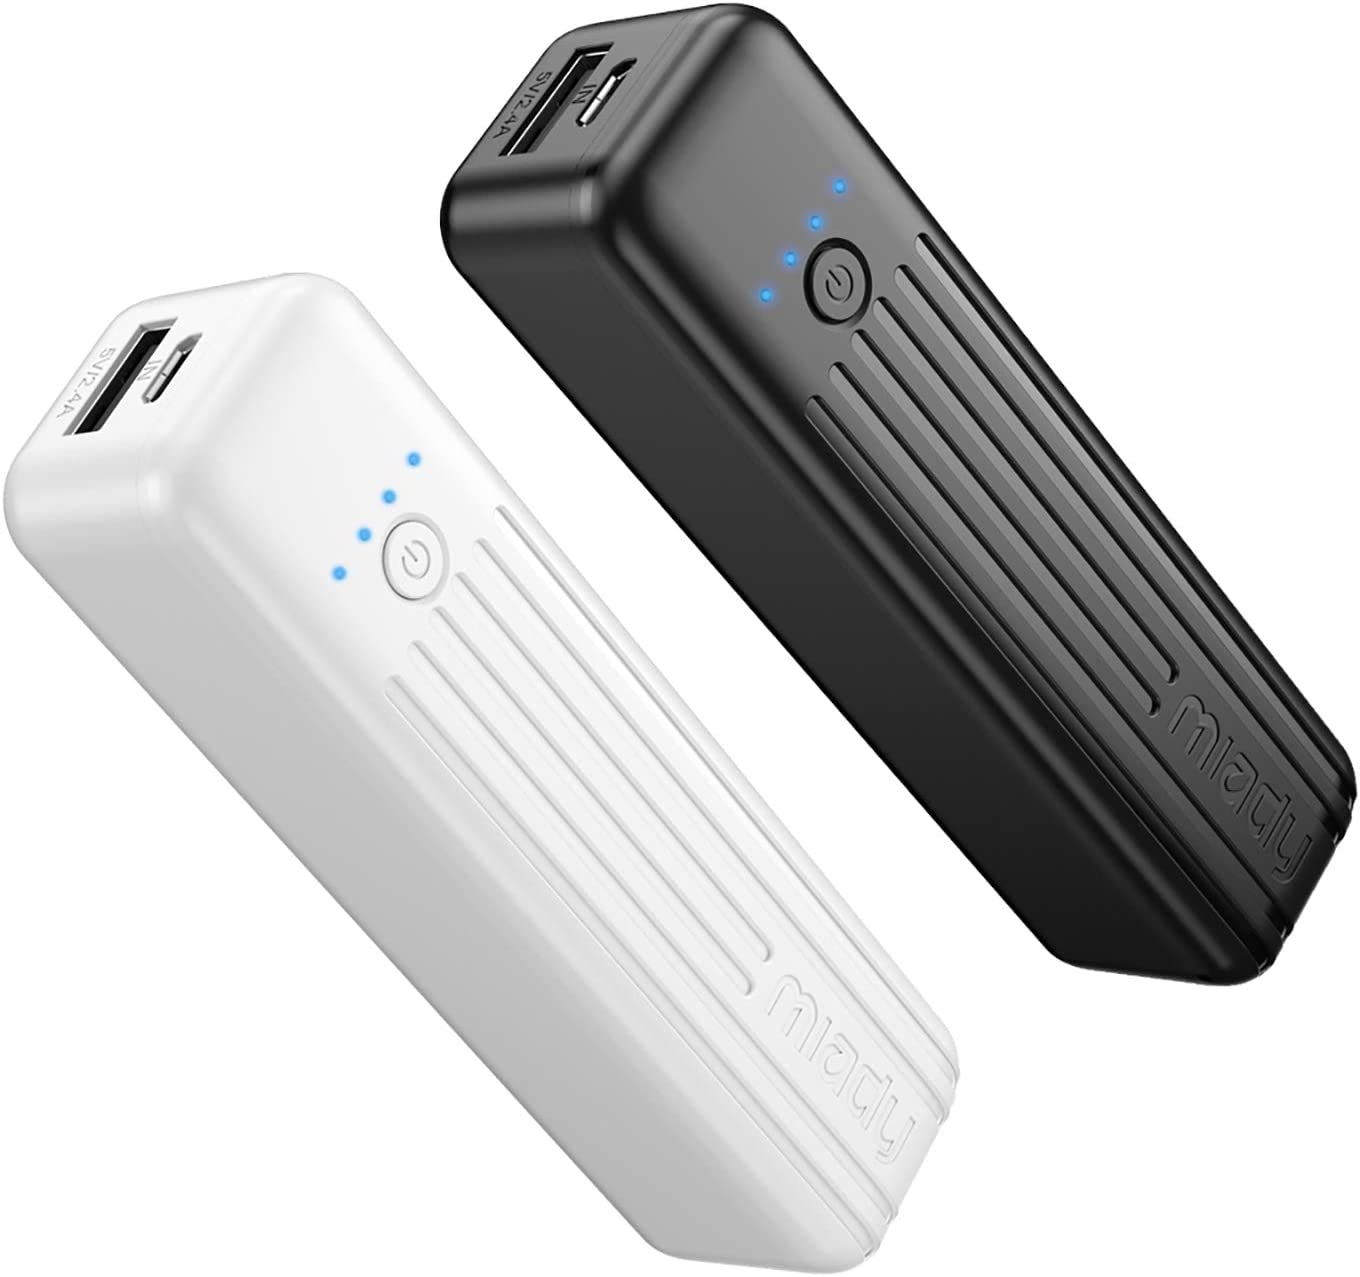 Miady 2-Pack Portable Charger 5000mAh, 3.45oz Lightweight Power Bank, 5V/2.4A Output & 5V/2A Input Battery Pack Charger, Mini Portable Phone Charger for iPhone, Samsung Galaxy and etc